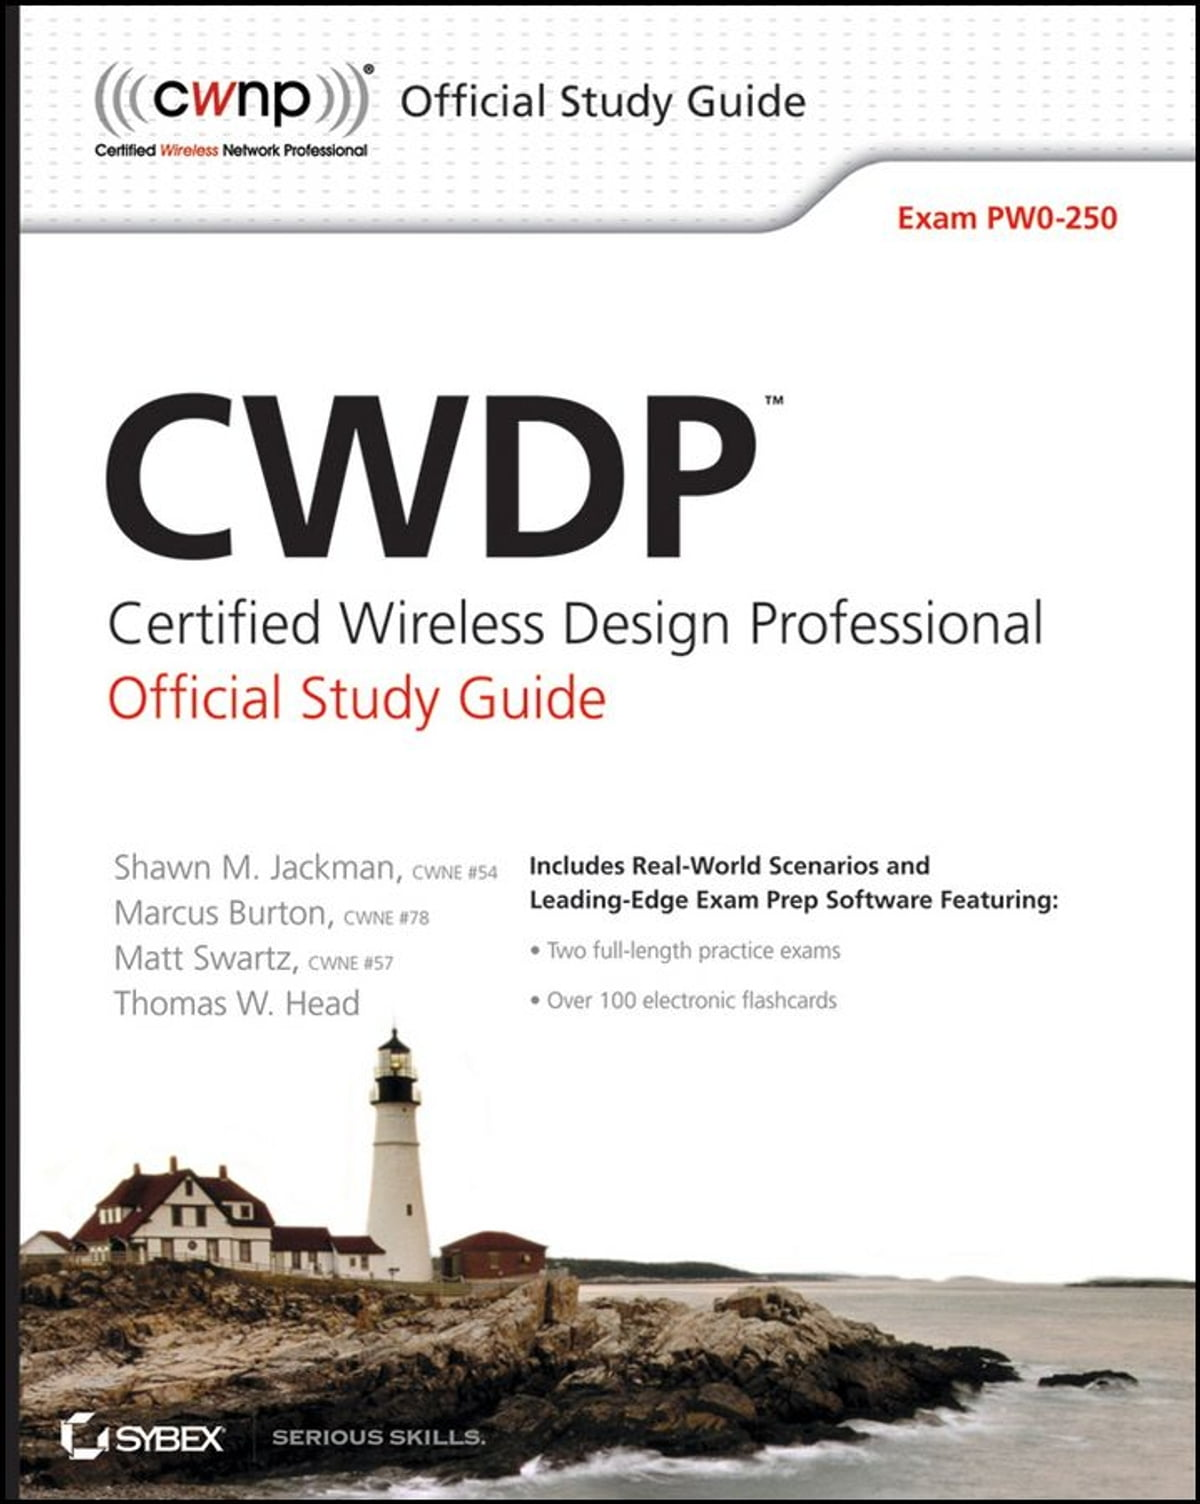 Cwdp certified wireless design professional official study guide cwdp certified wireless design professional official study guide ebook by shawn m jackman 9781118041611 rakuten kobo xflitez Images